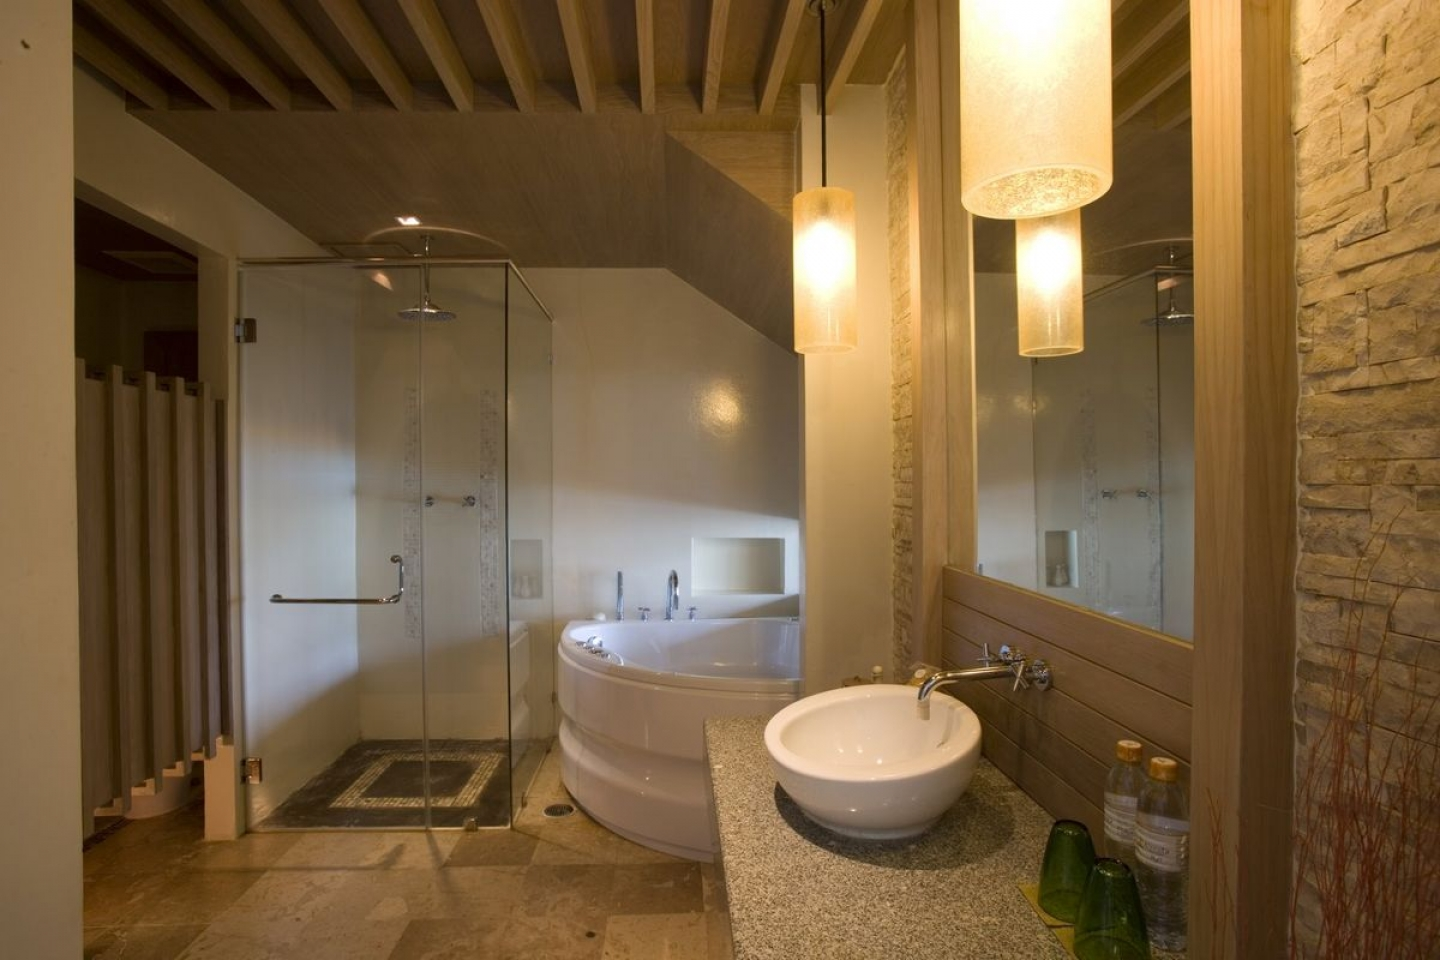 spa bathroom ideas pictures photo - 2